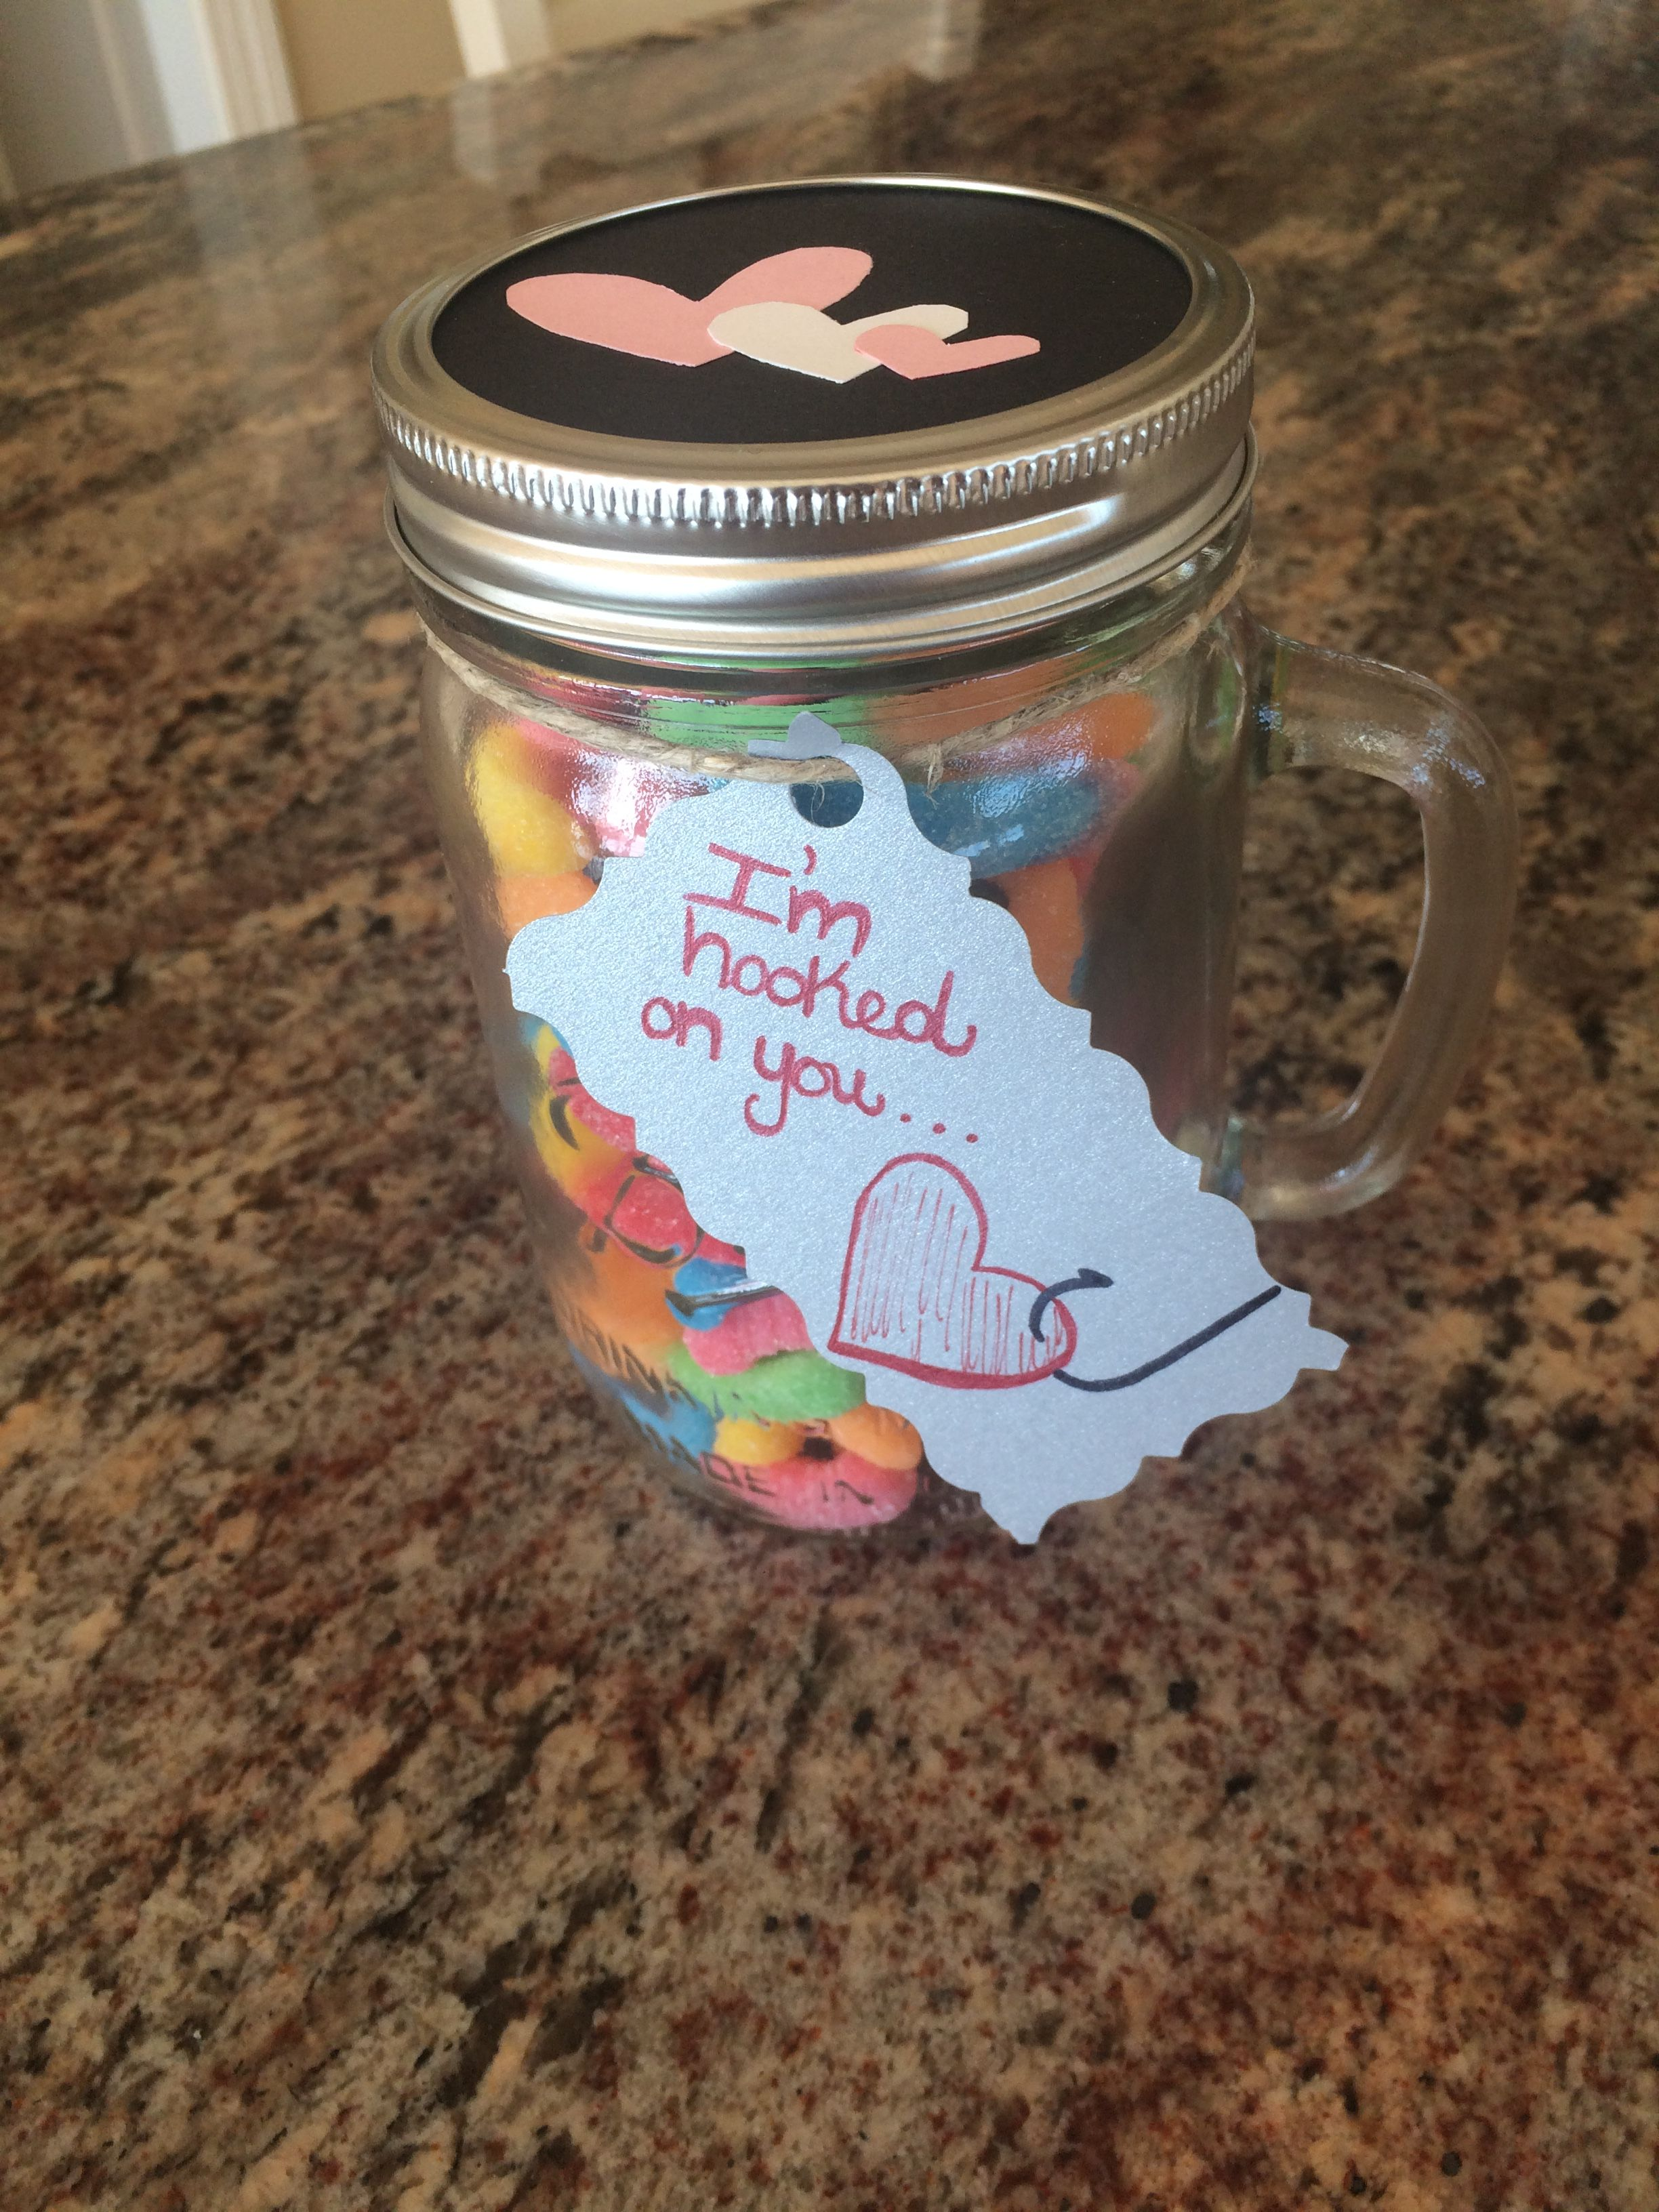 Homemade Valentine S Day Gift For My Boyfriend A Mason Jar That Contains Sour Gummy Worms Homemade Valentines Christmas Gifts For Boyfriend Boyfriend Homemade